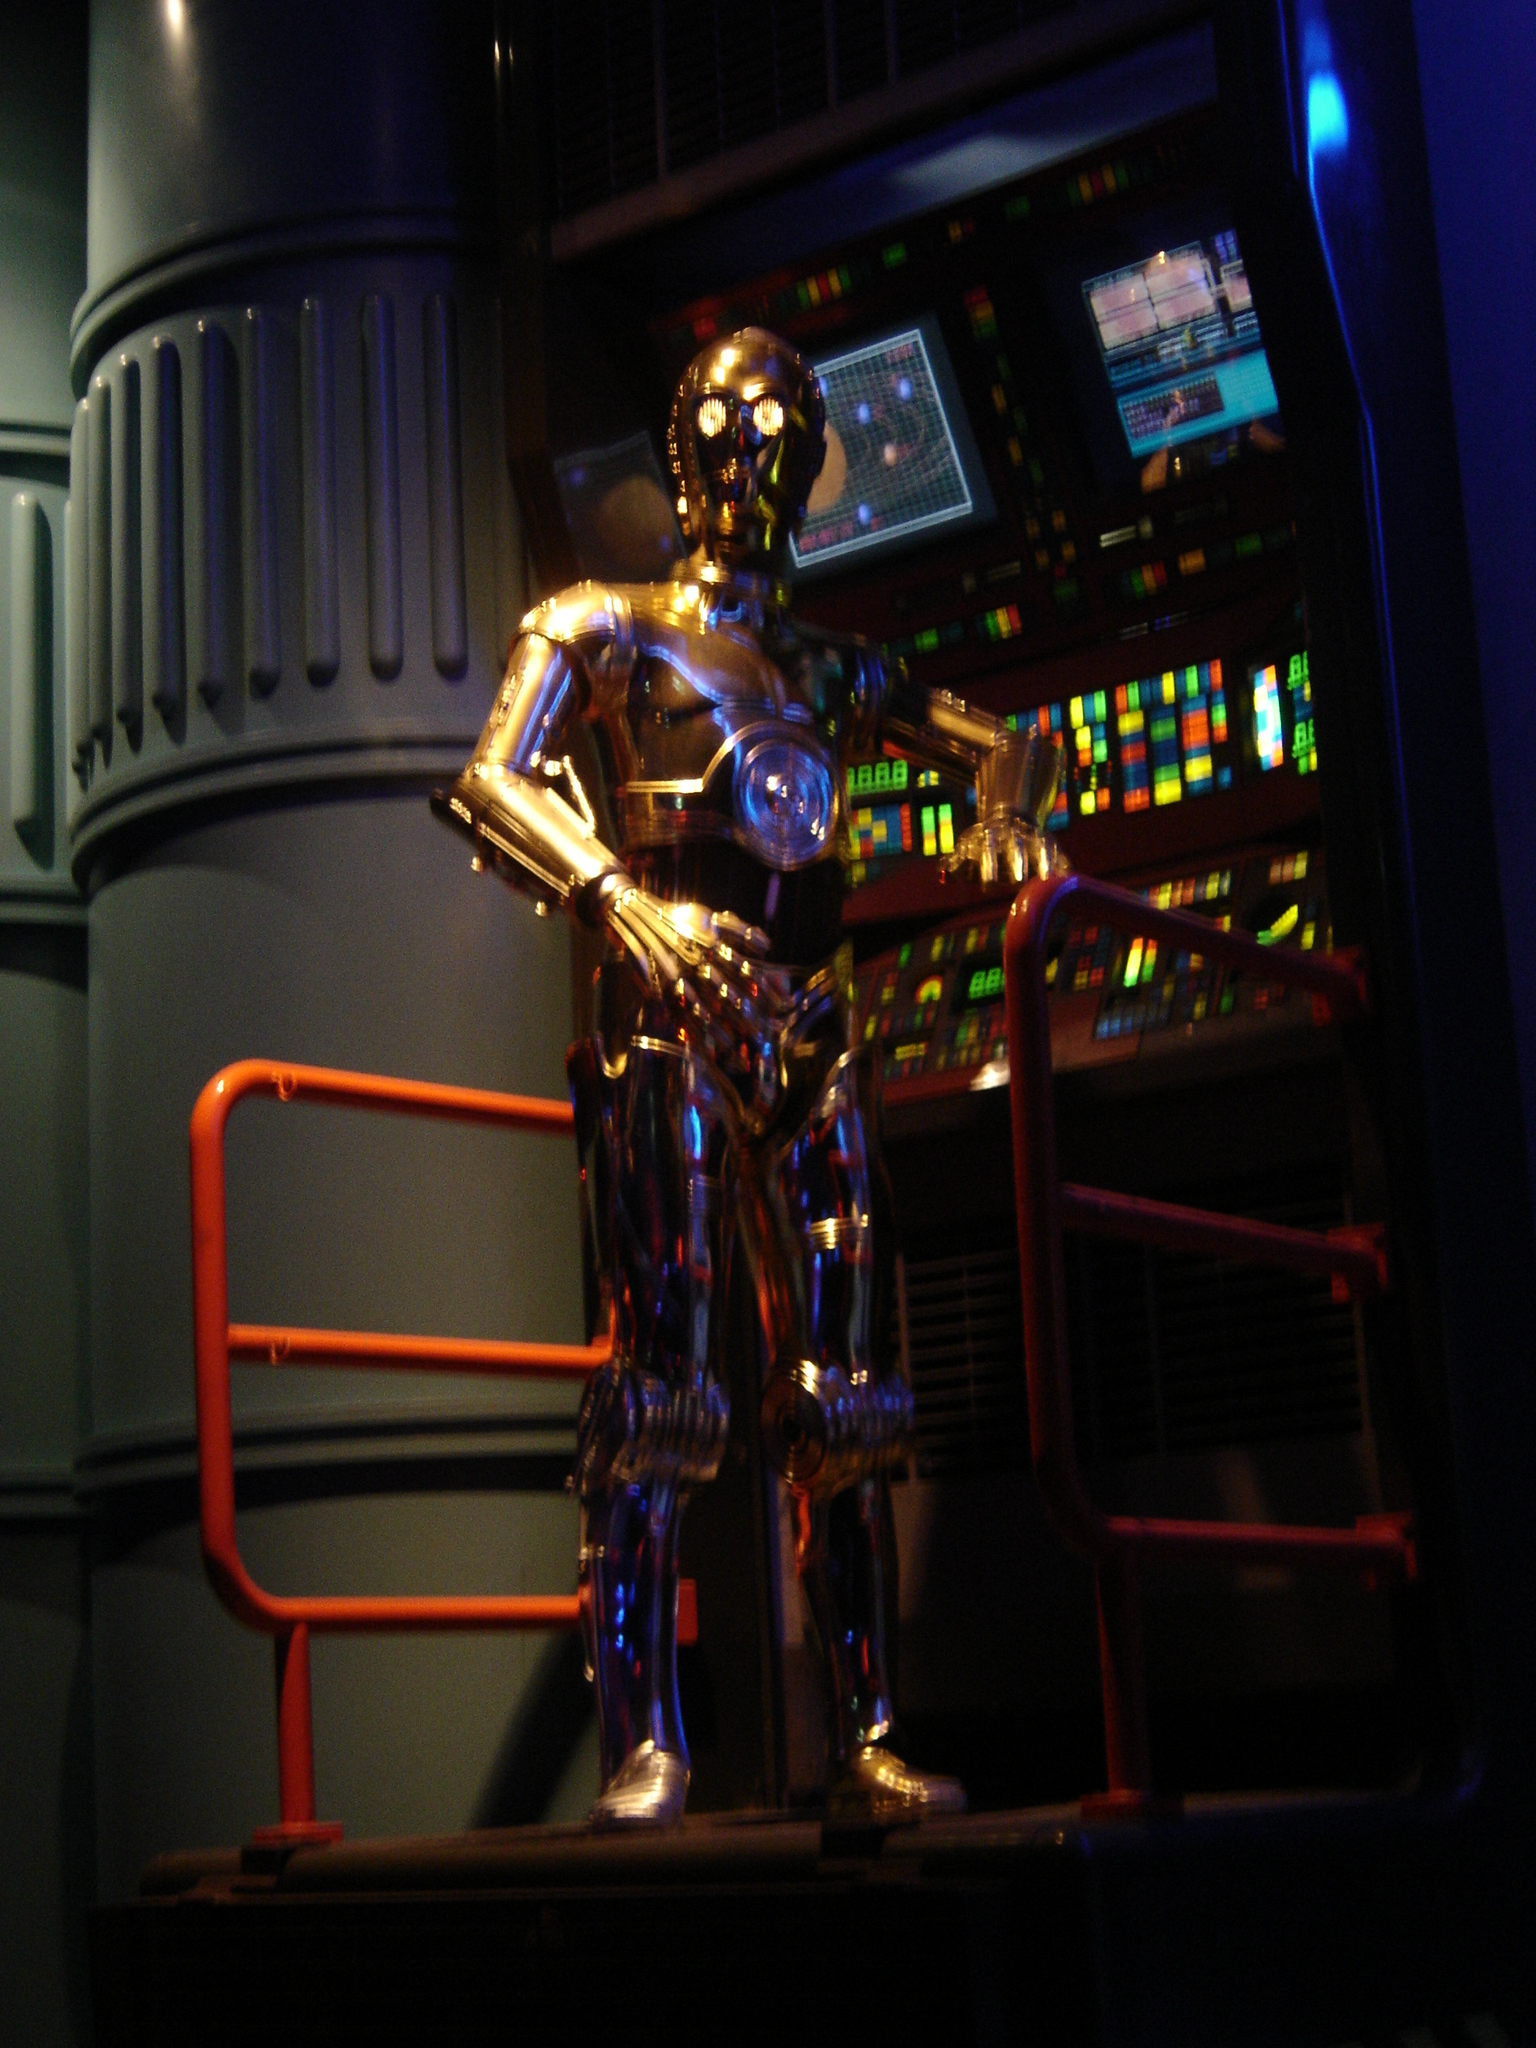 Photo 53 - C3-PO dans la file d'attente du Star Tour